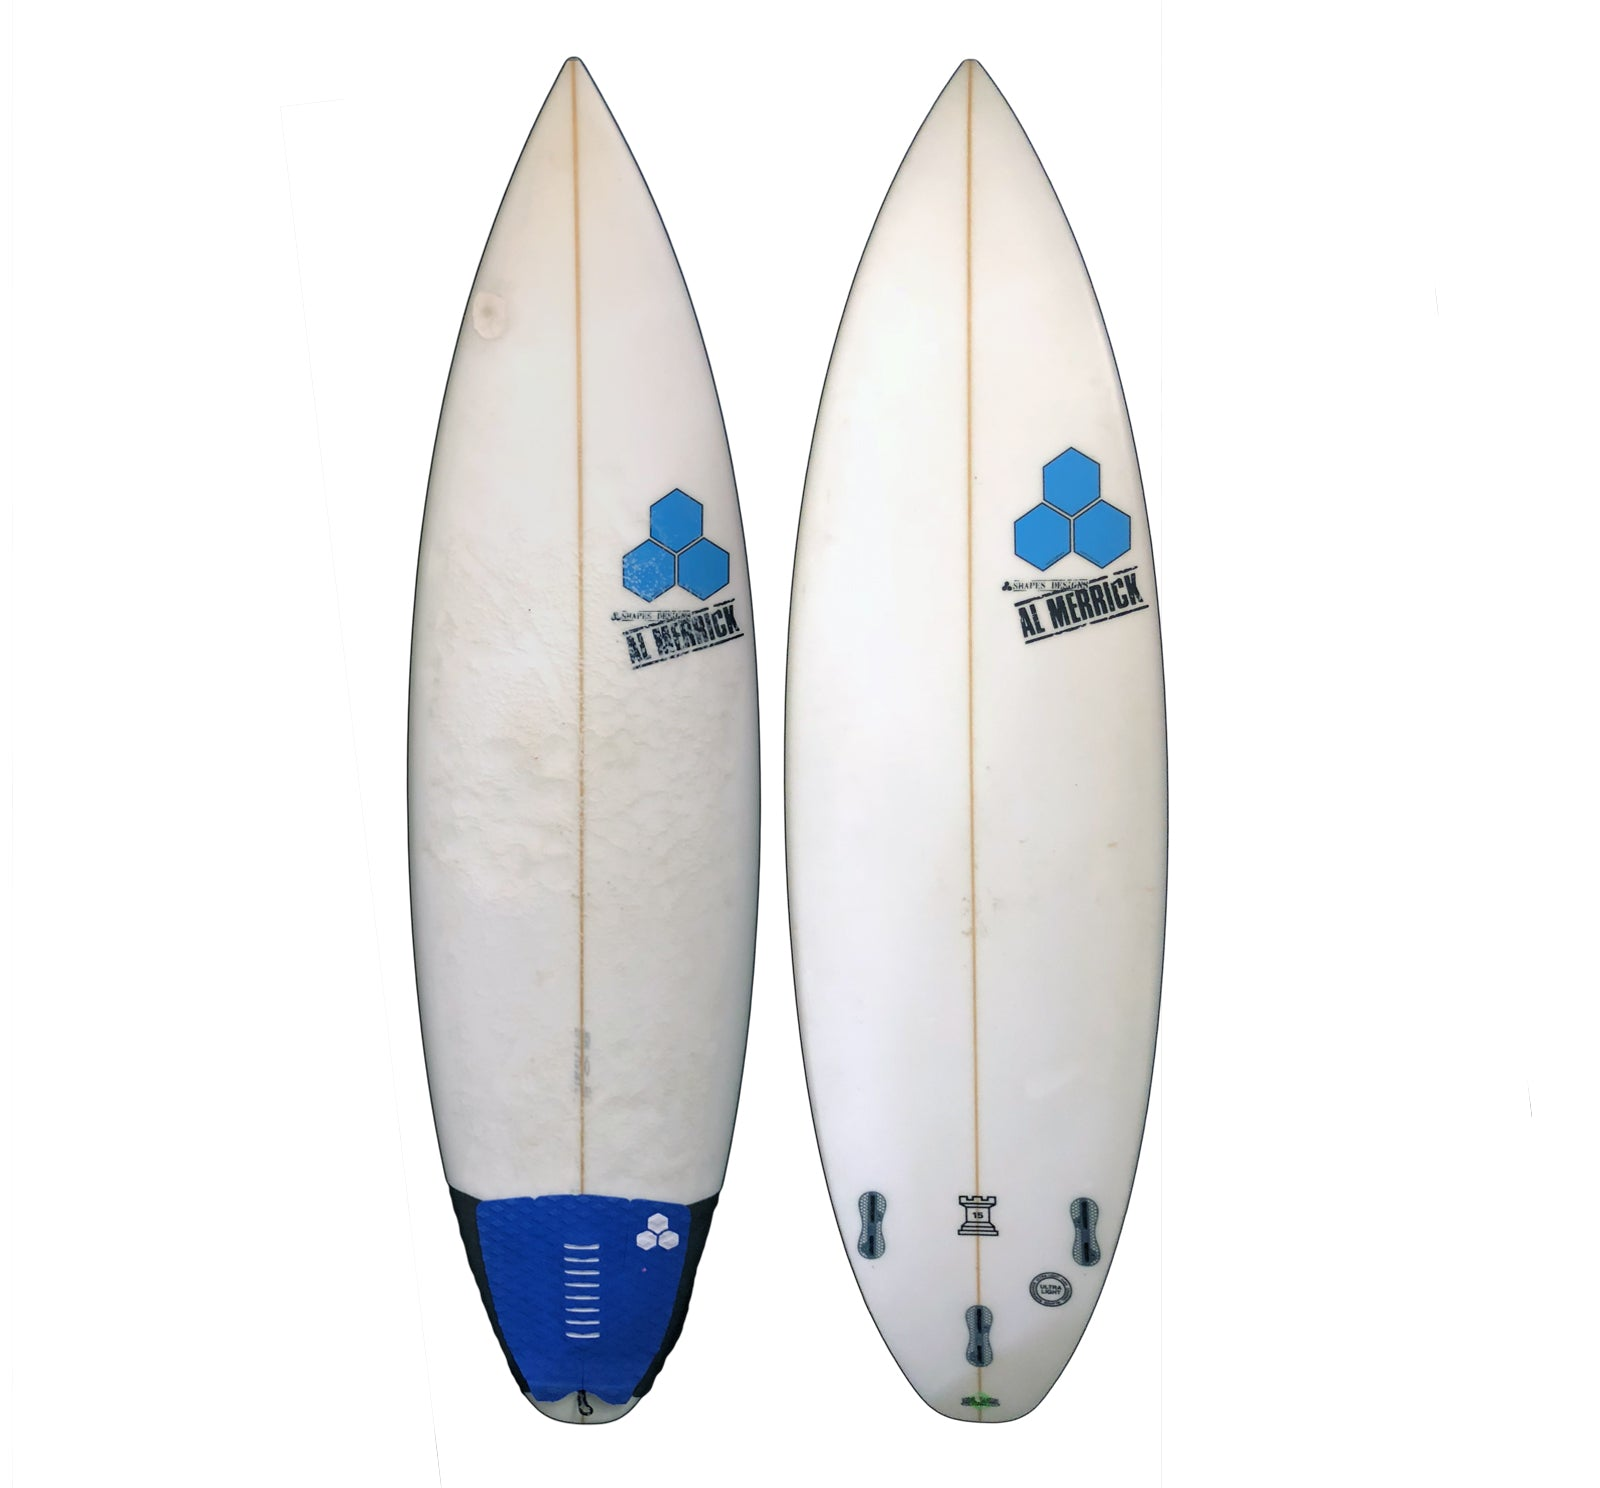 Channel Islands Rook 15 6'0 Used Surfboard